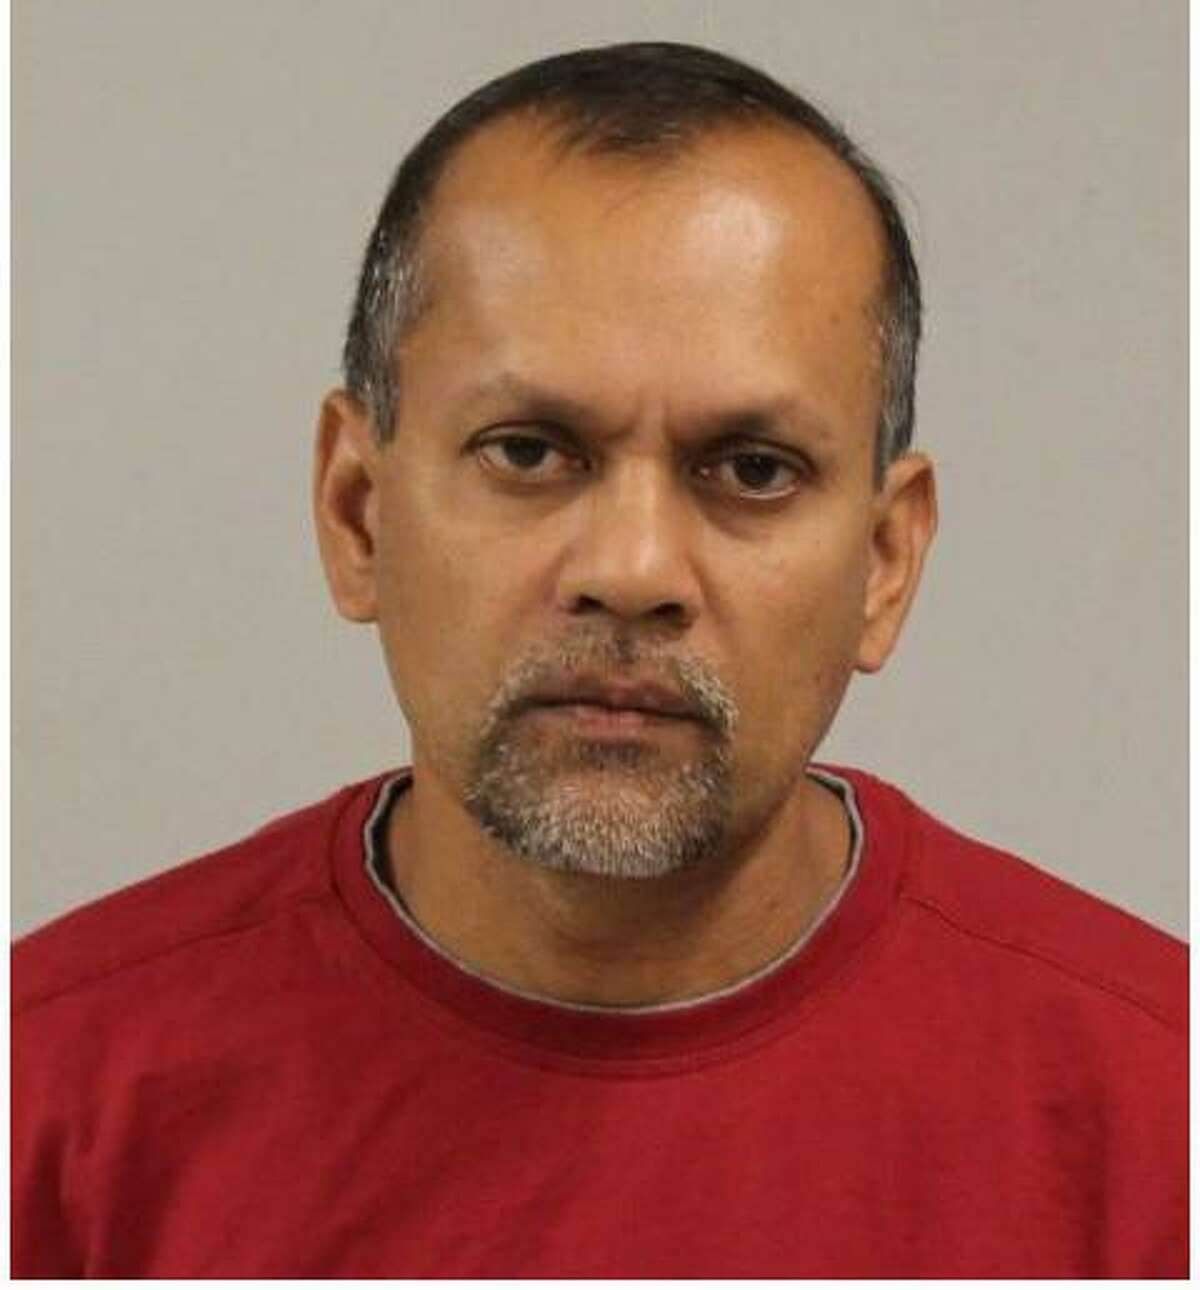 Norwalk resident Curtis Basdeo was charged with third degree larceny in Westport on Oct. 31.